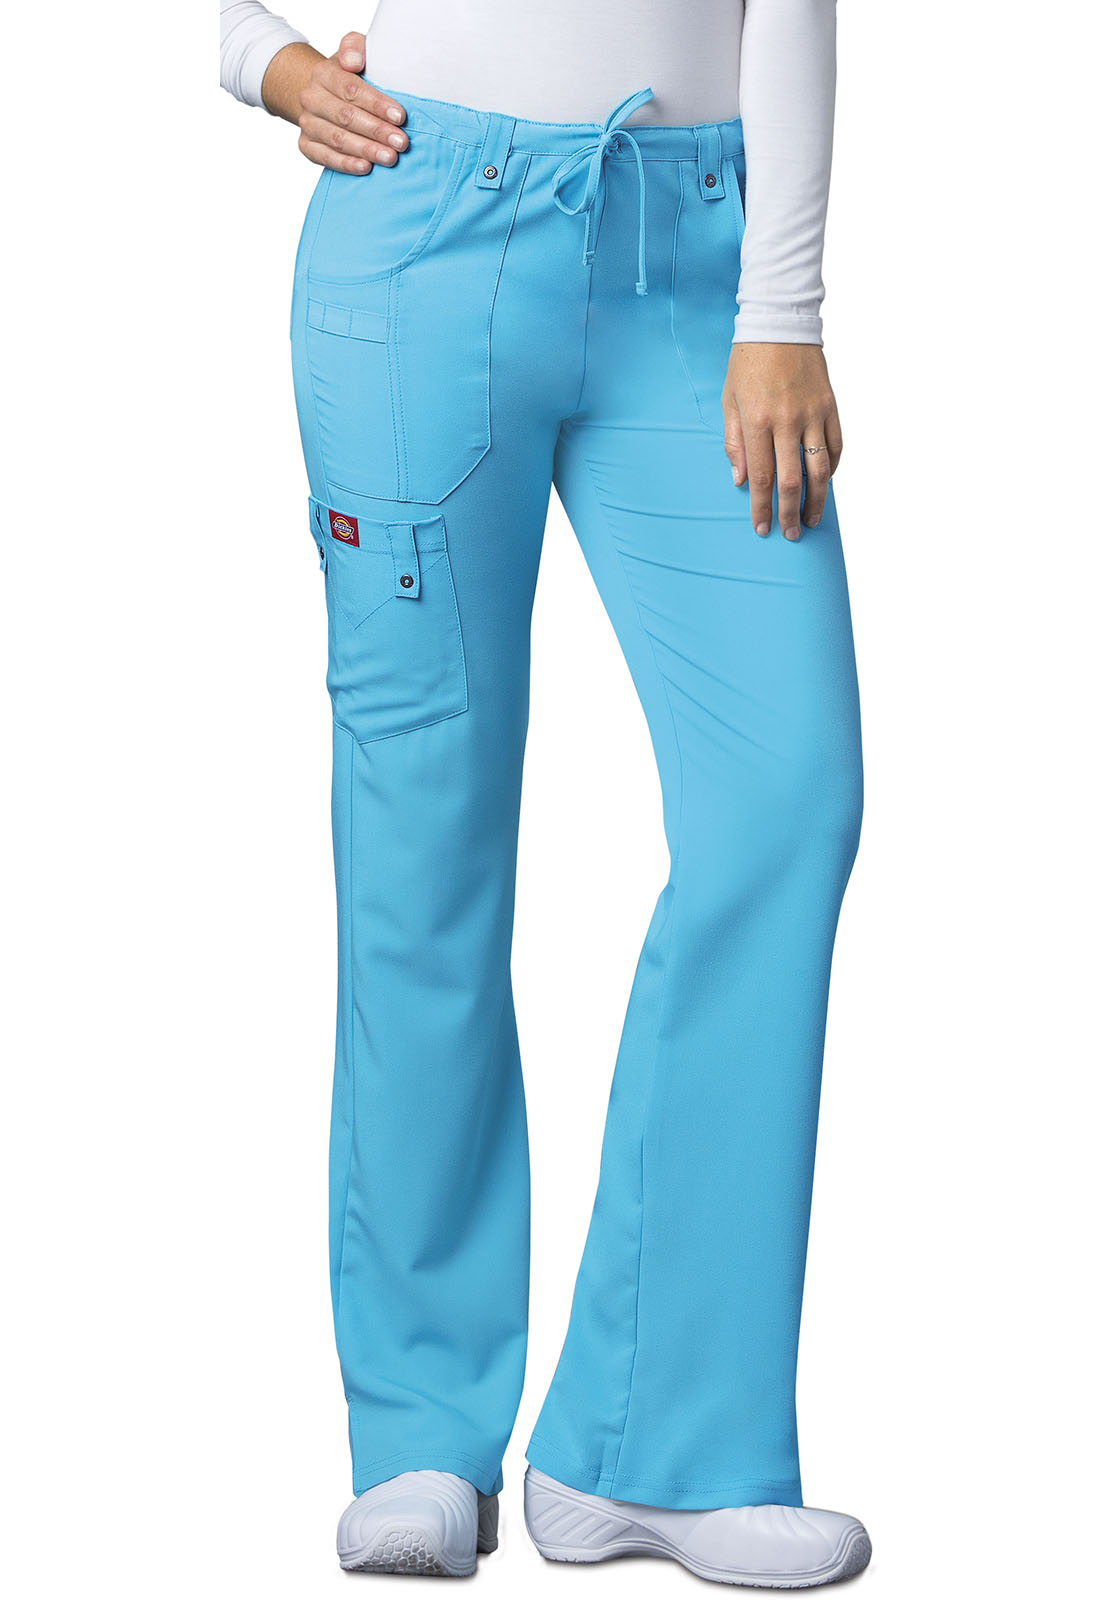 07feb3dd634 Xtreme Stretch Mid Rise Drawstring Cargo Pant in Icy Turquoise 82011 ...